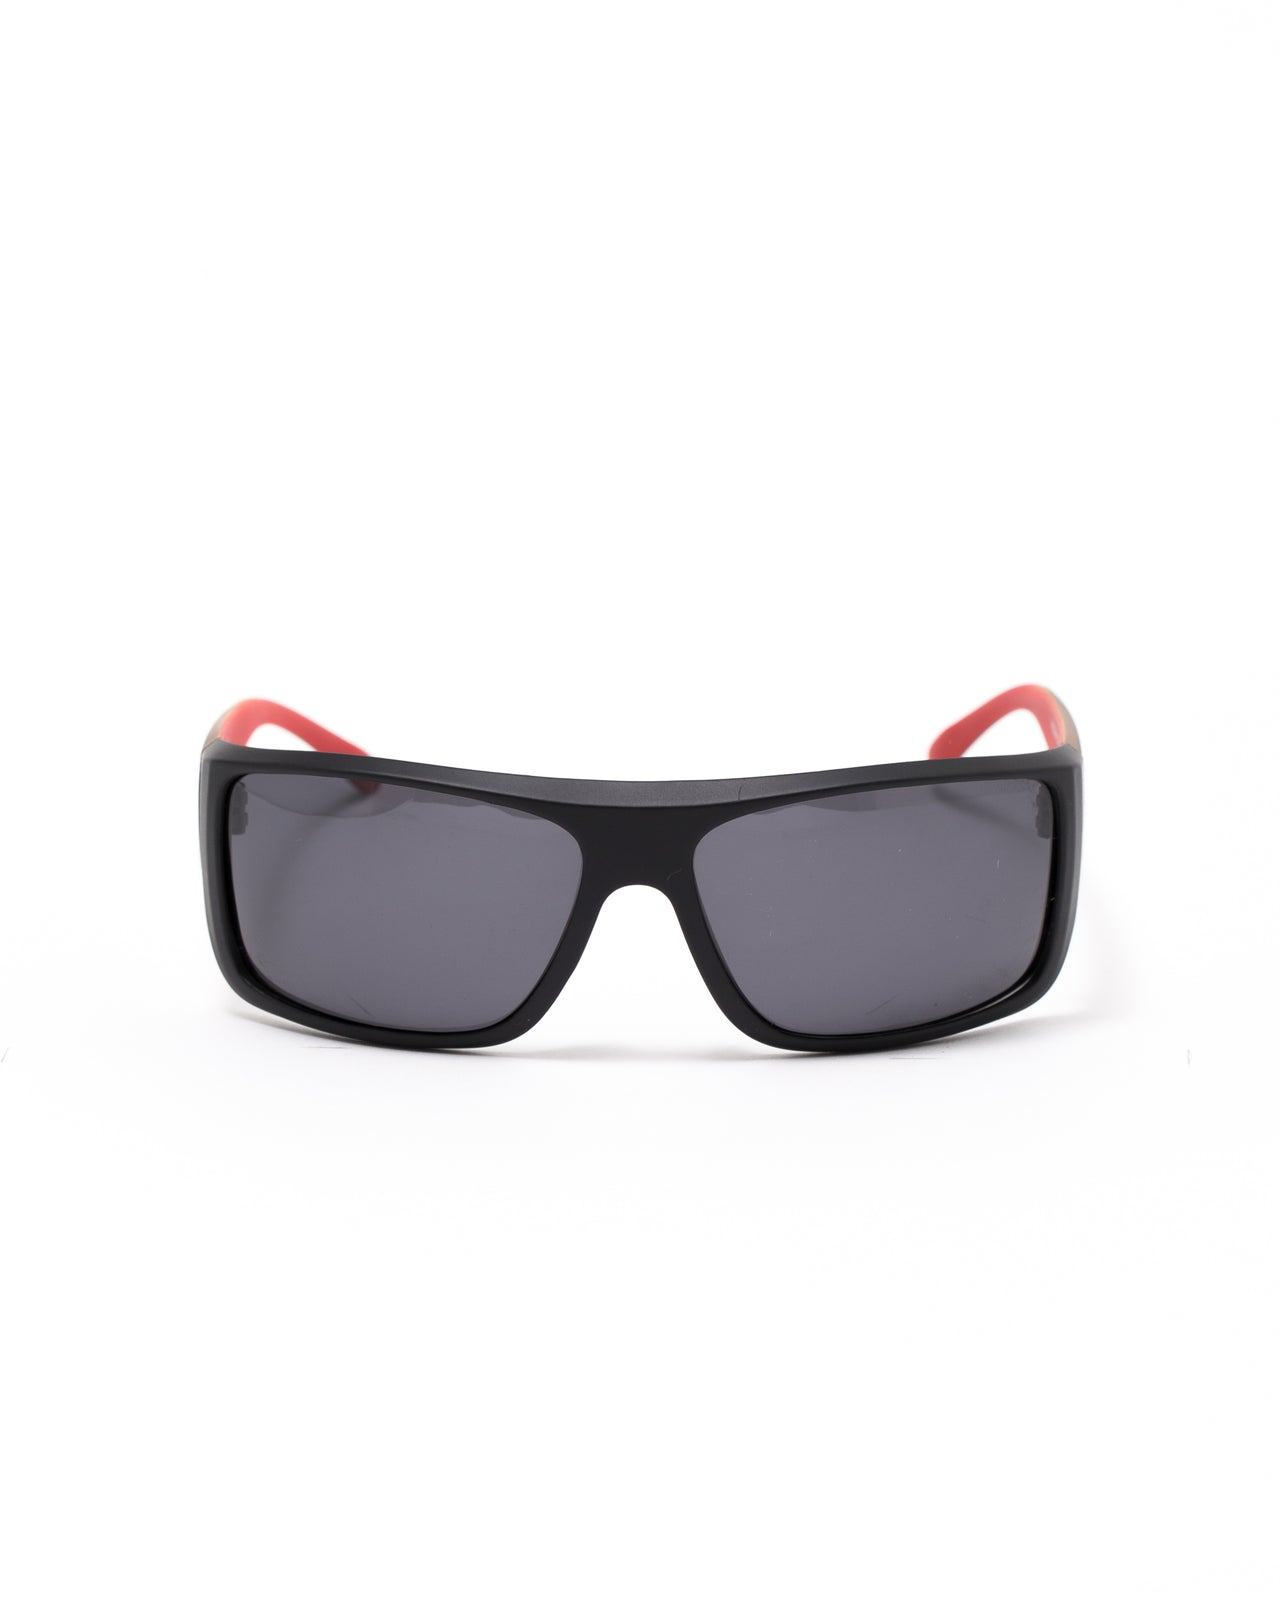 The 3558 Sunglasses - Color: Black Fade | Black